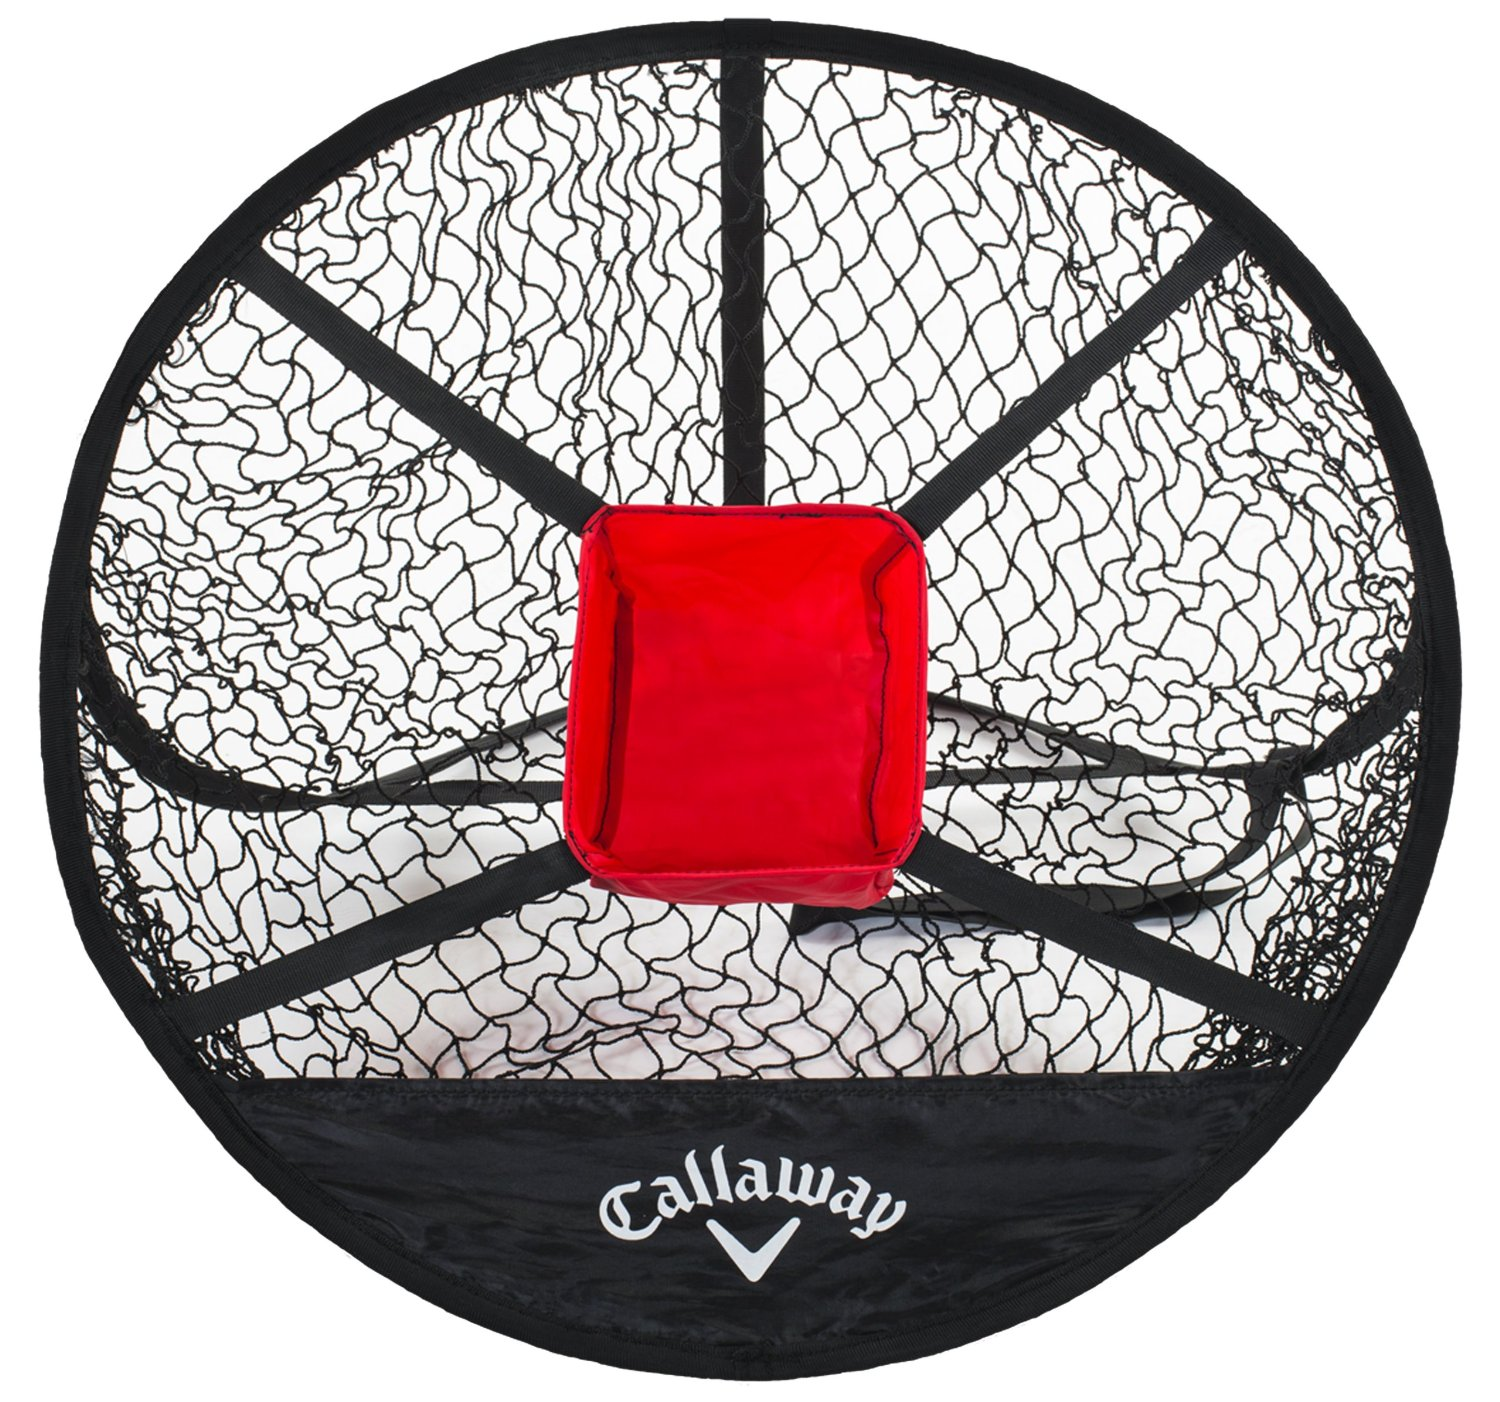 IZZO Callaway Golf Chipping Nets